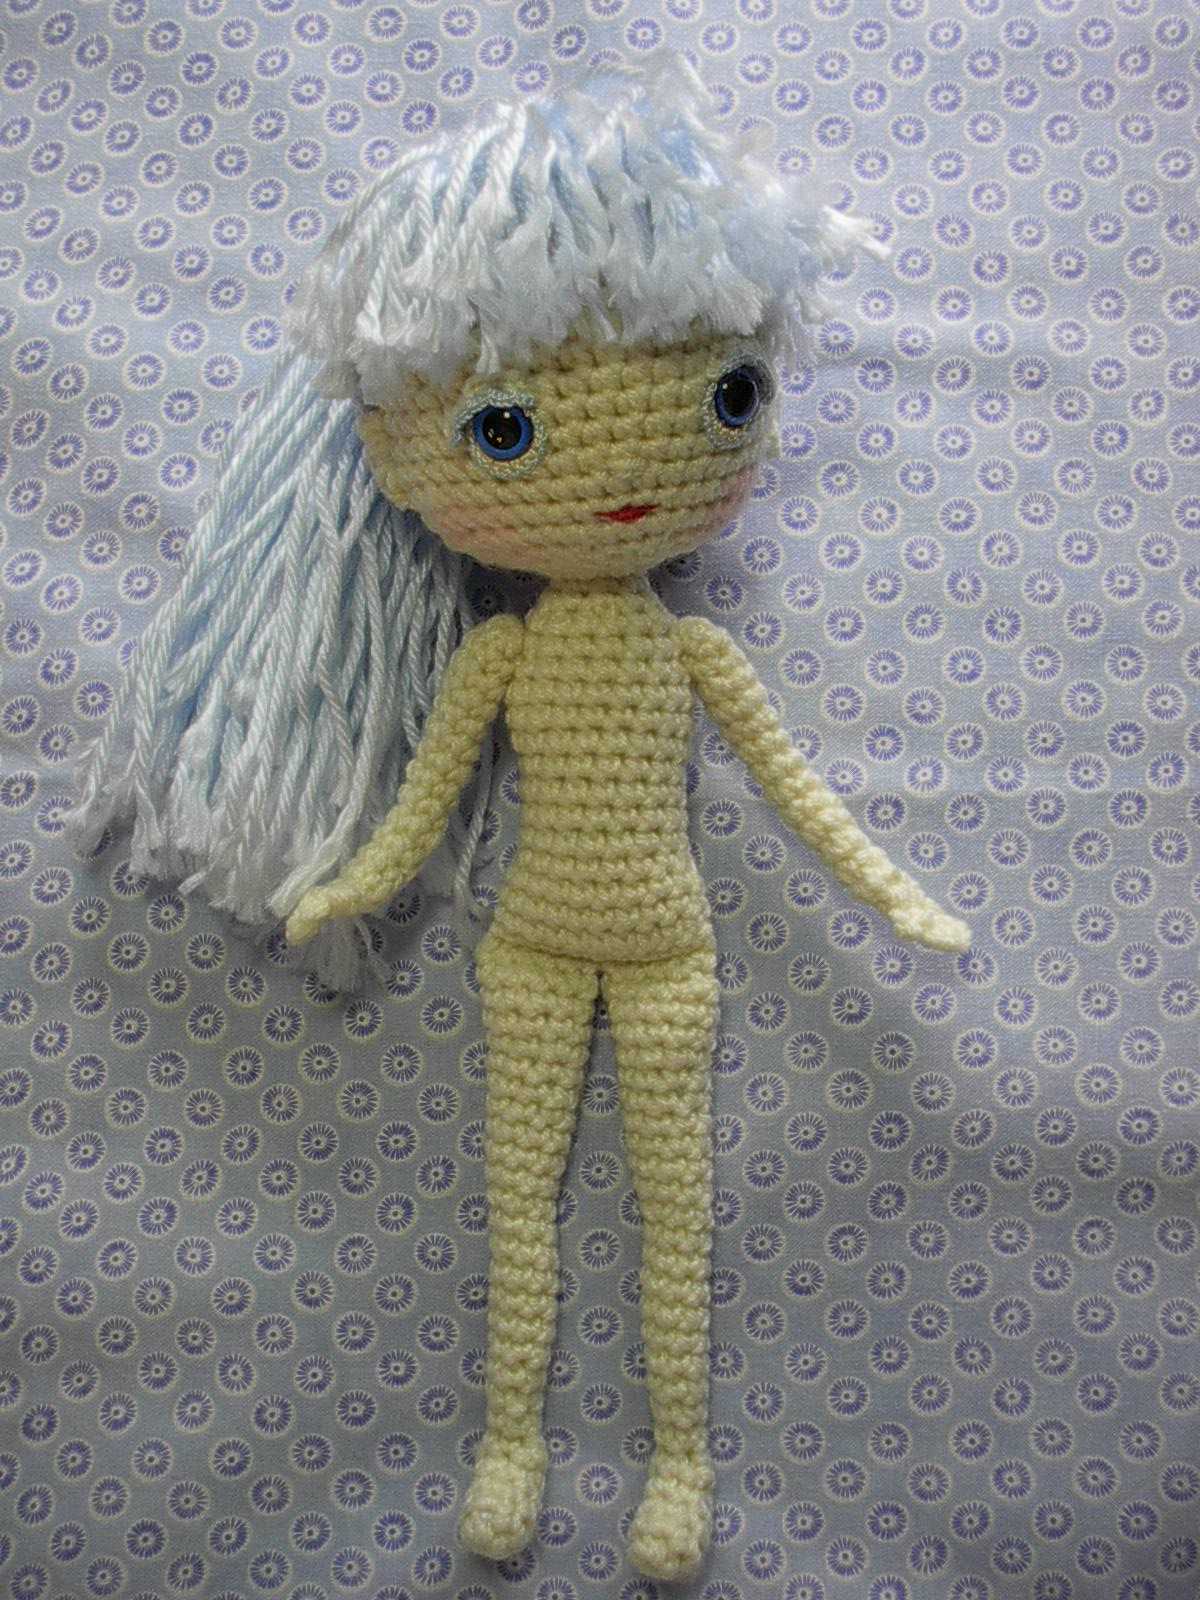 Basic Crochet Doll Pattern Free : CROCHET DOLL FREE PATTERNS - Crochet Learn How to Crochet